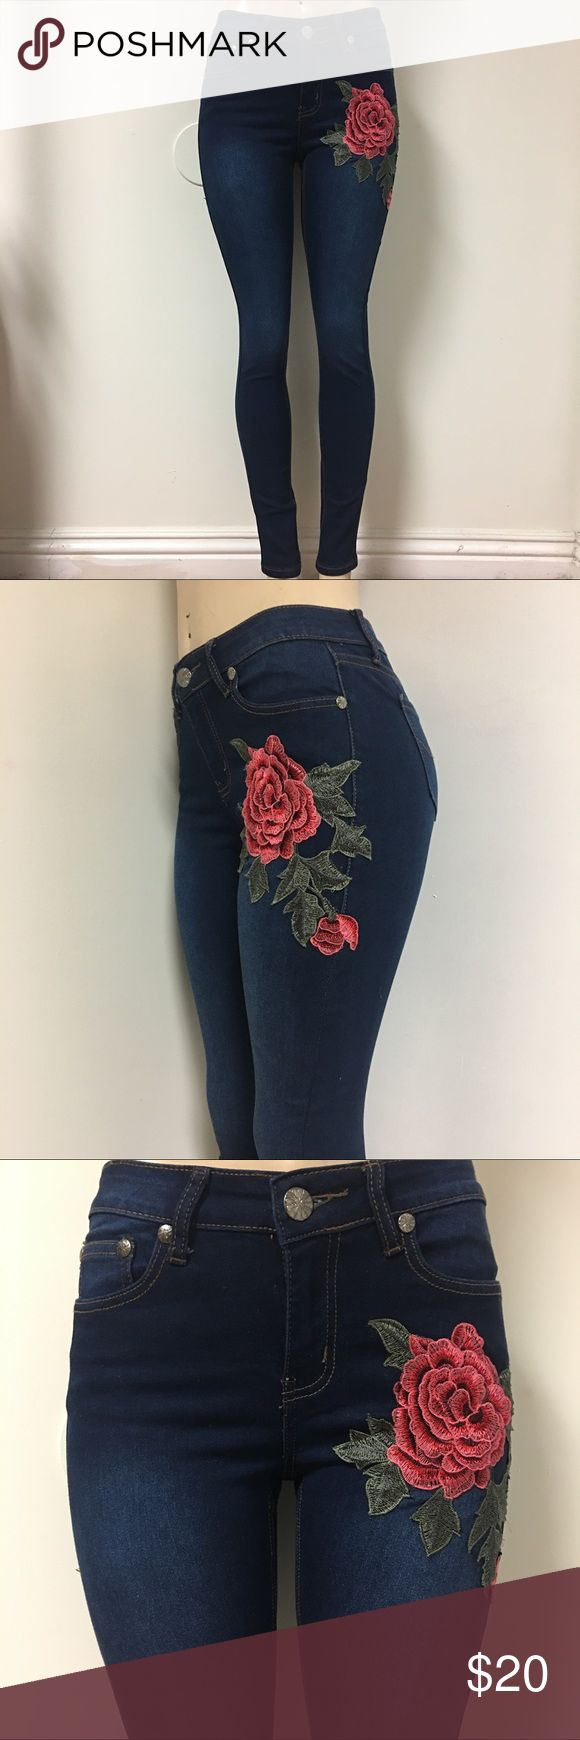 Rose Embroidered Skinny Jeans True to size, has stretch:) Jeans Skinny